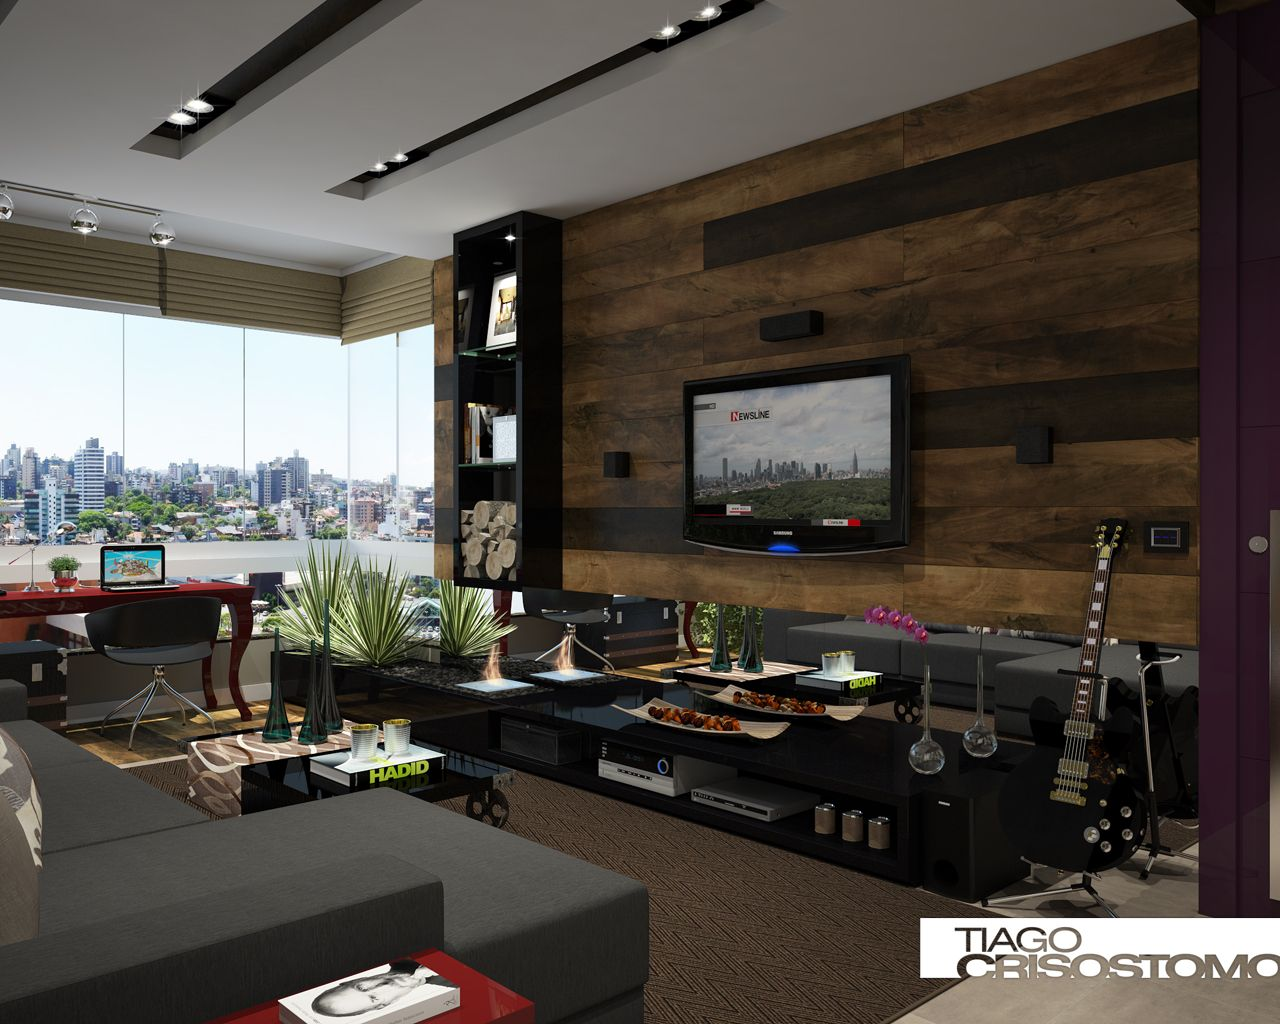 Good Tiago Crisostomo   Design: Home Theater